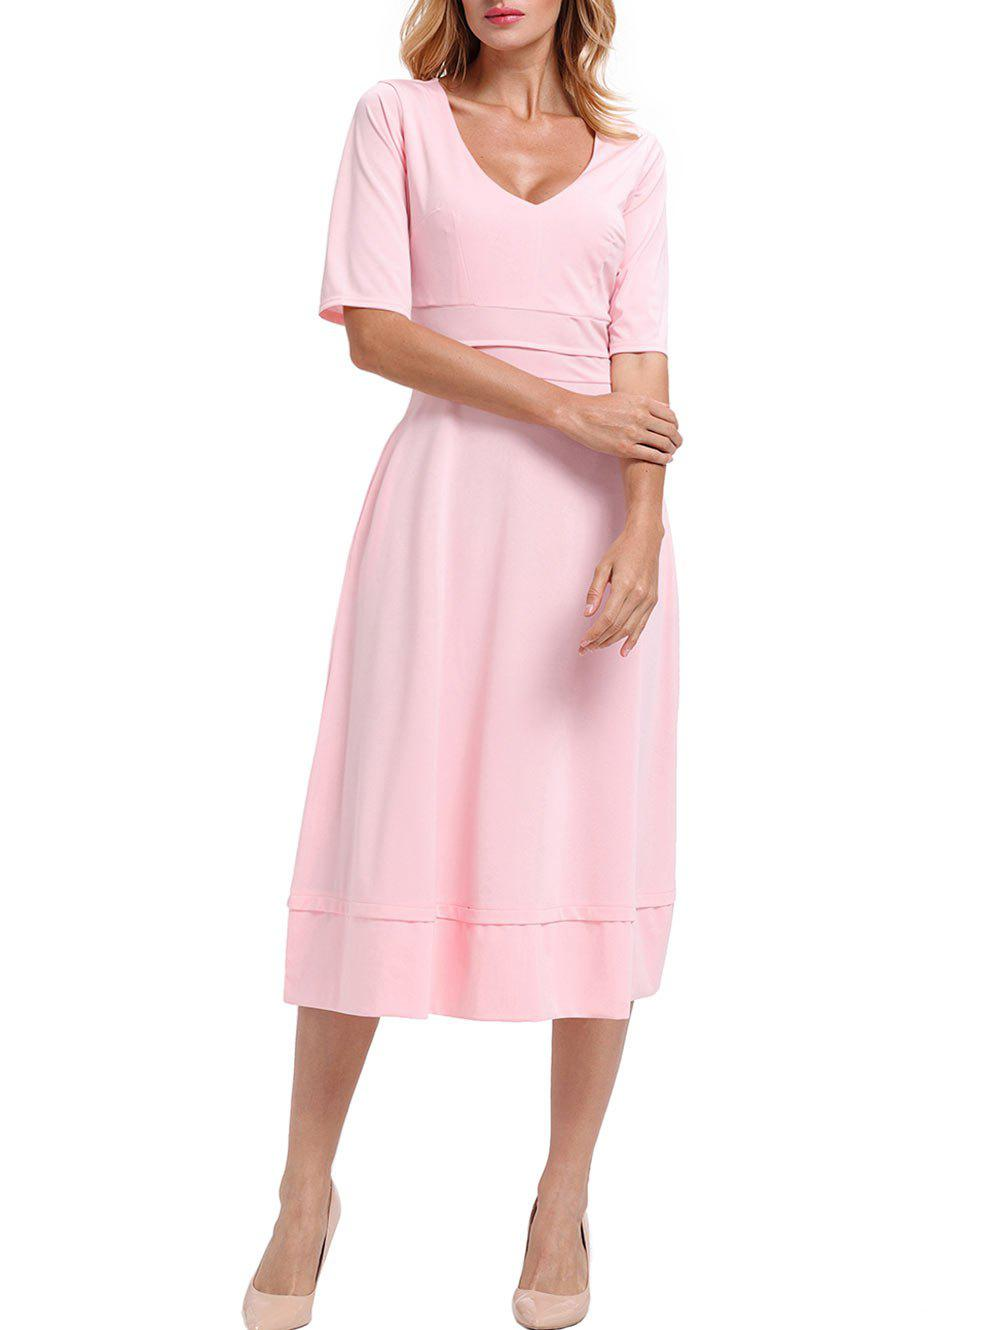 V Neck Half Sleeve Tea Length Dress - PINK L